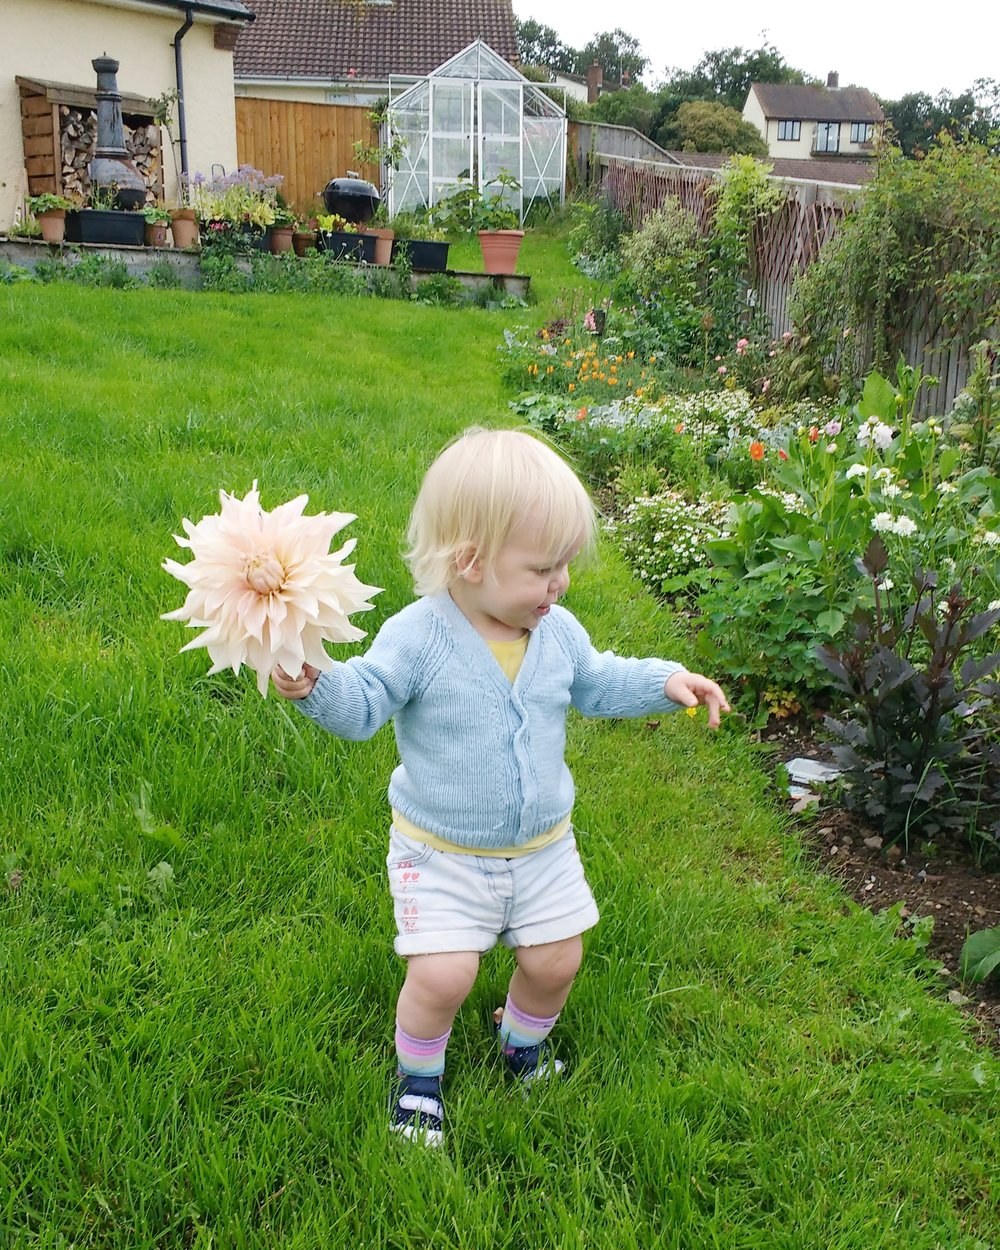 Proof of the size of those dahlia compared to Immy! Both beautiful!